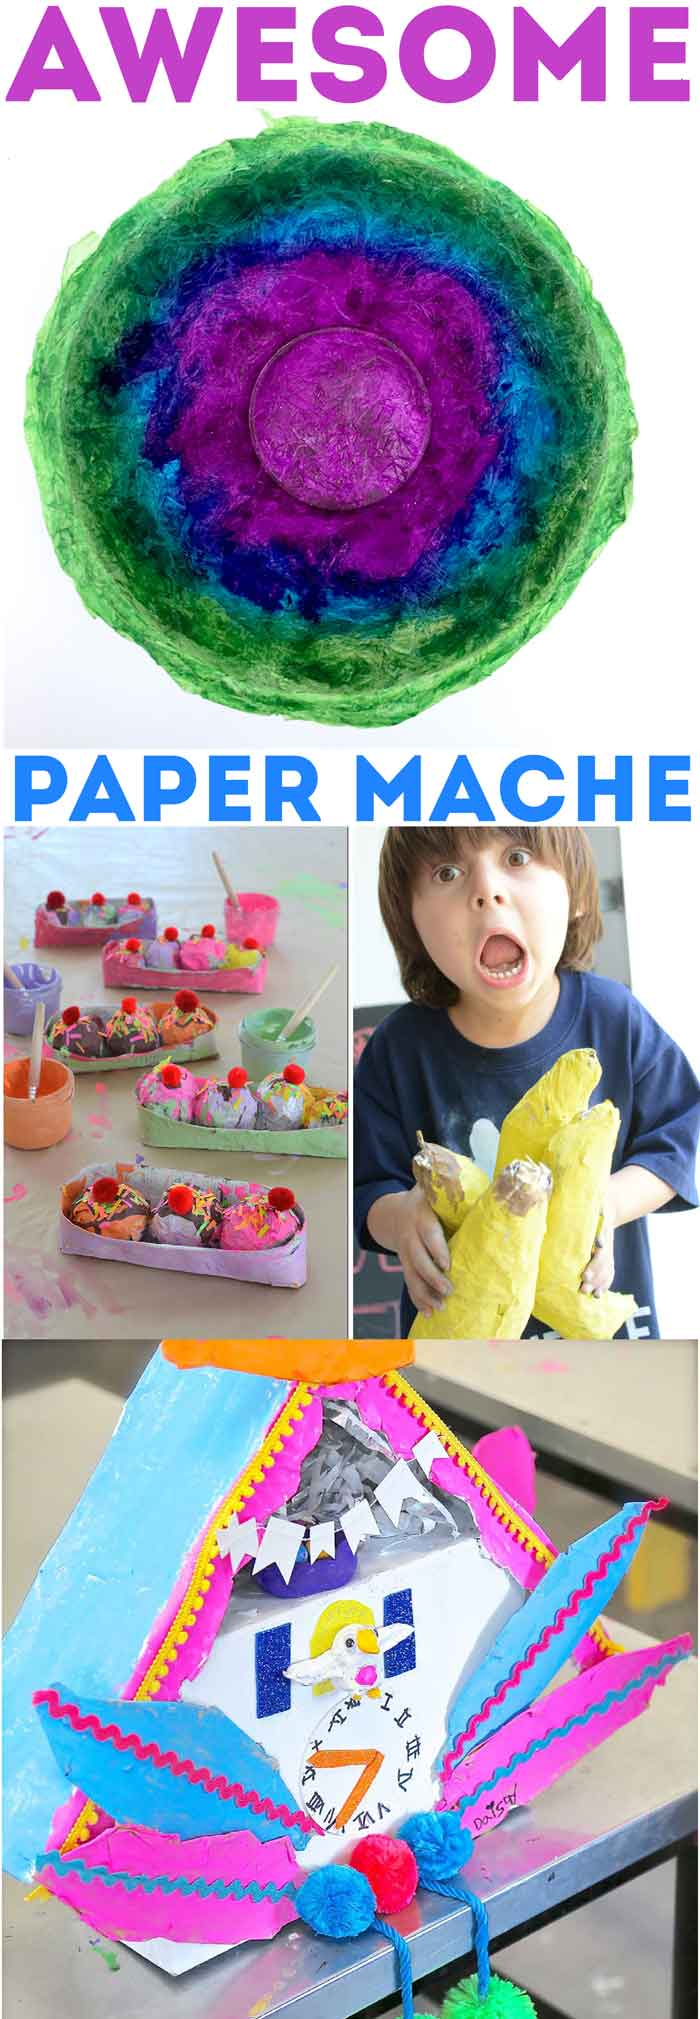 60+ amazing paper crafts for kids (and adults) to make! Paper Mache Projects